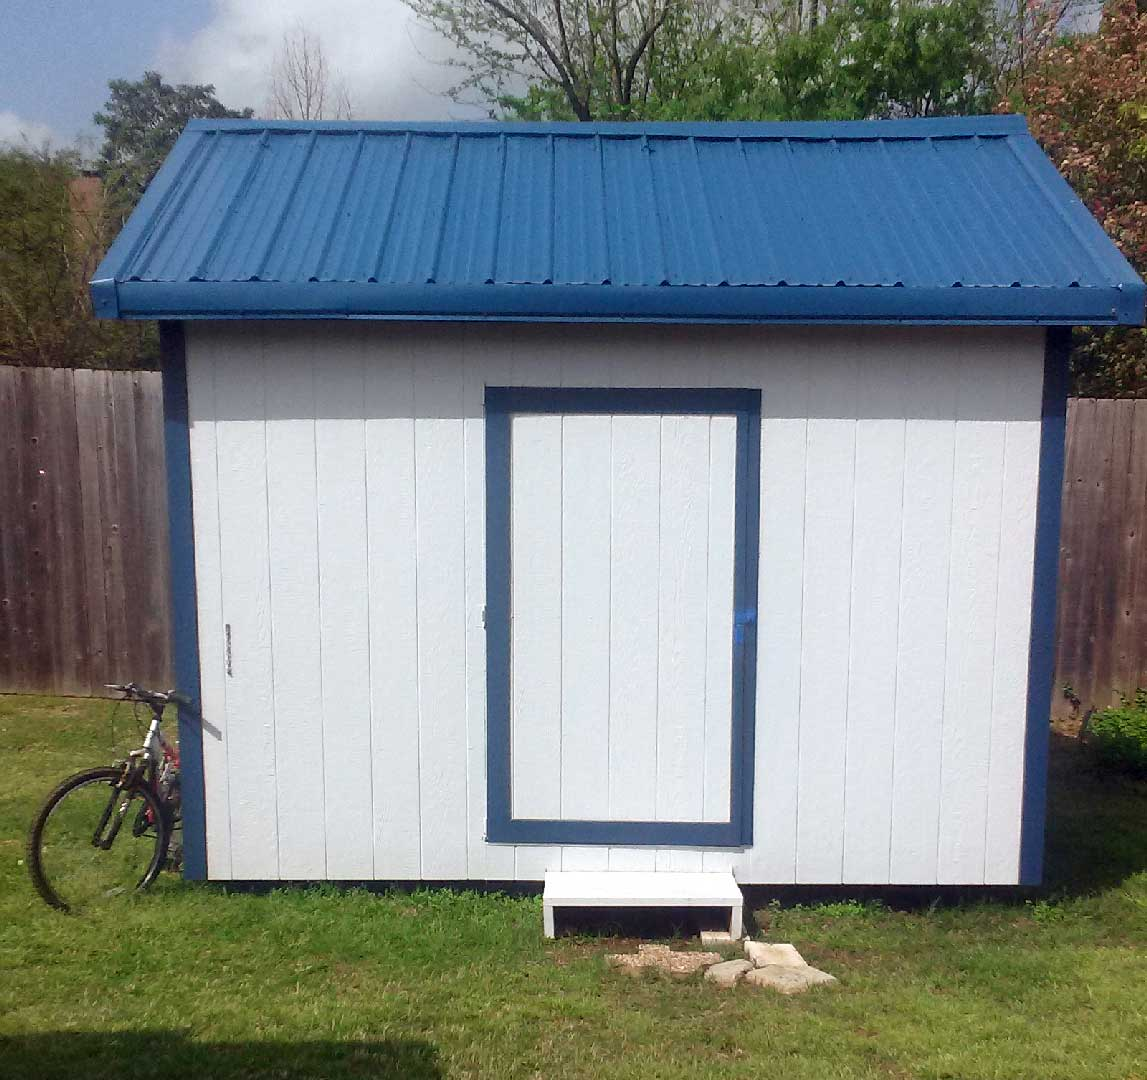 Deluxe gable roof shed photo gallery for Roofing a shed style roof